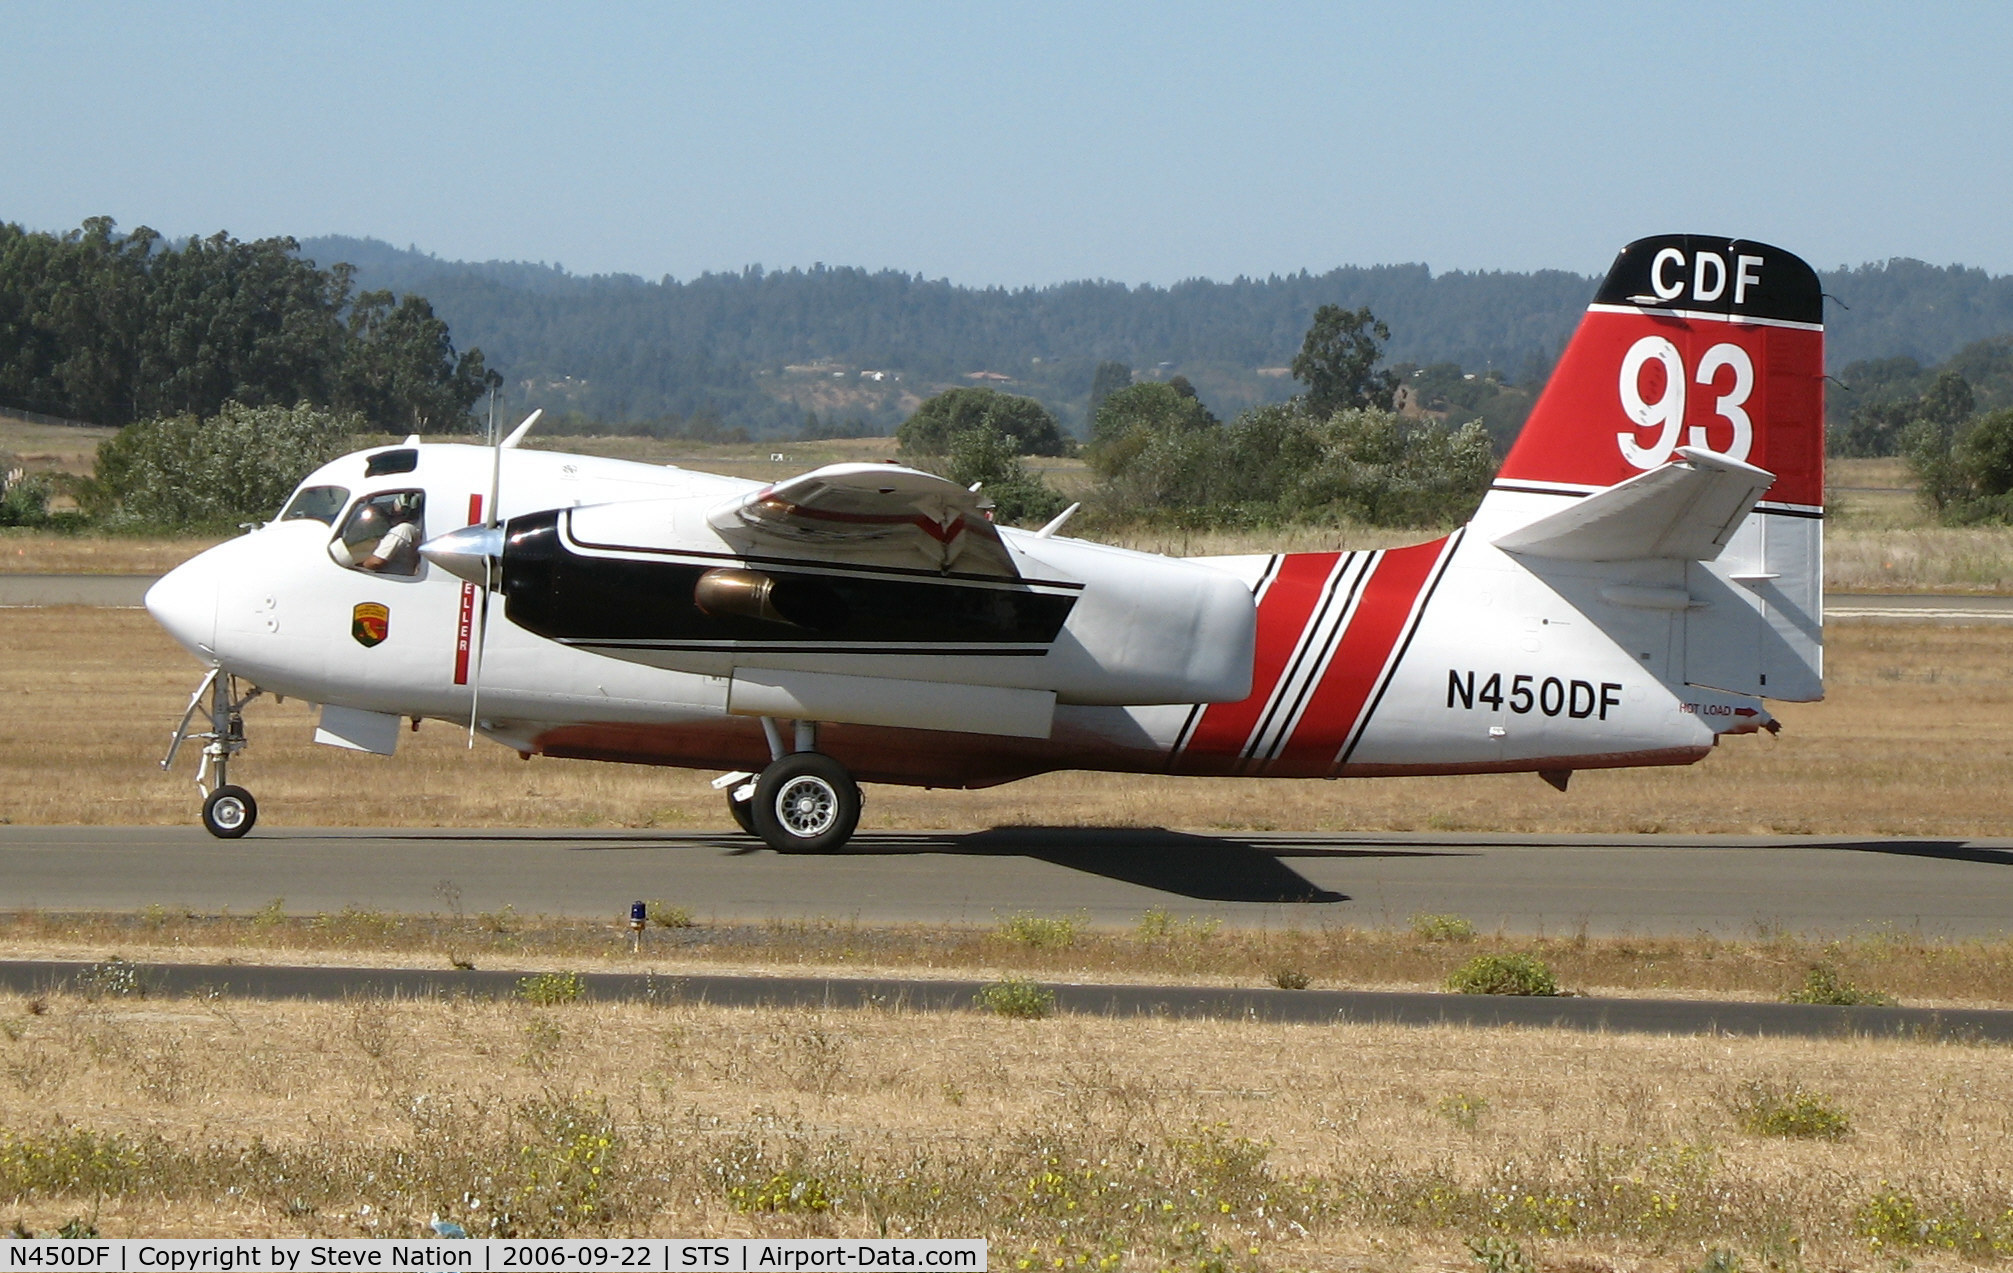 N450DF, 2005 Marsh Aviation S-2F3AT C/N 152341, Pilot Walt Darren taxis CDF S-2T Tanker #93 (Chico, CA-based) for take-off at Charles M. Shulz Airport, Santa Rosa, CA and retardent drop on Yountville Fire